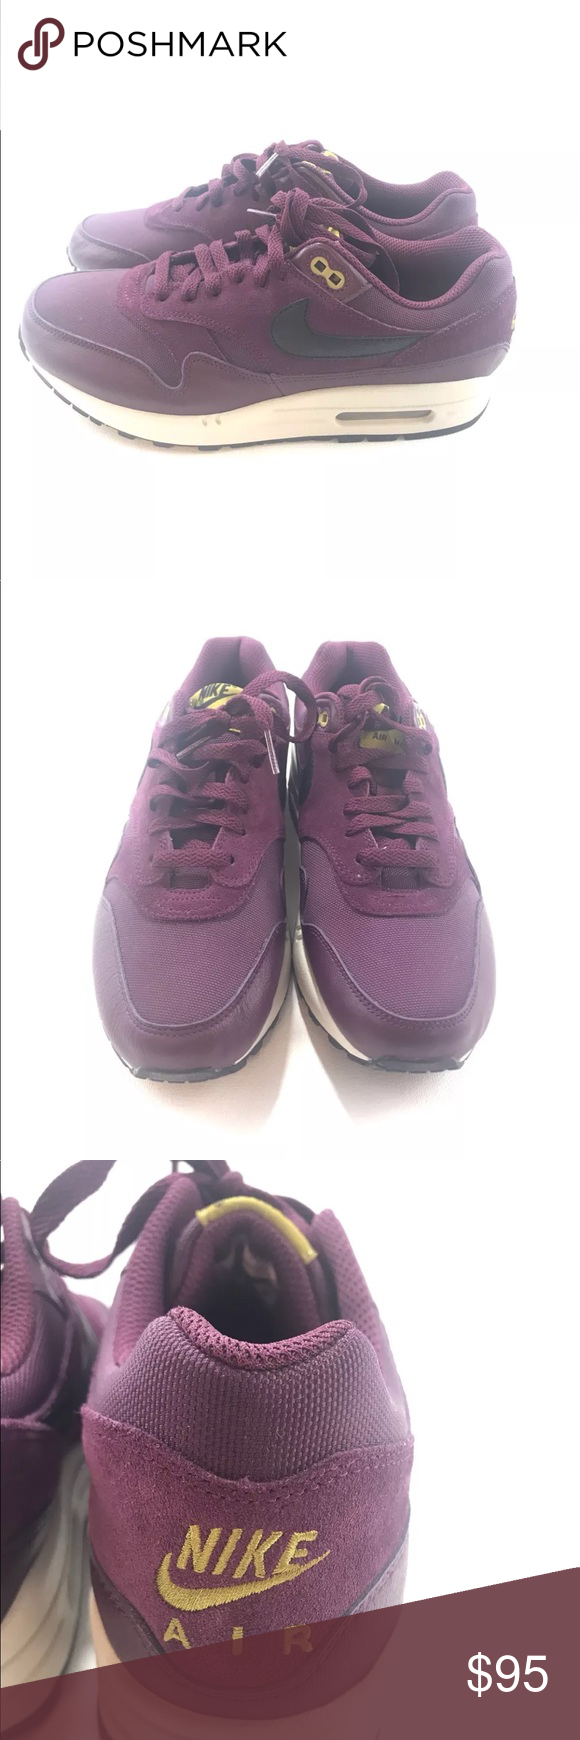 super popular 7a346 a3d4d Nike Mens Air Max 1 Leather Premium Nike Mens Air Max 1 Leather Premium Sz  8 Bordeaux Dessert Moss Shoes 875844-601 Nike Shoes